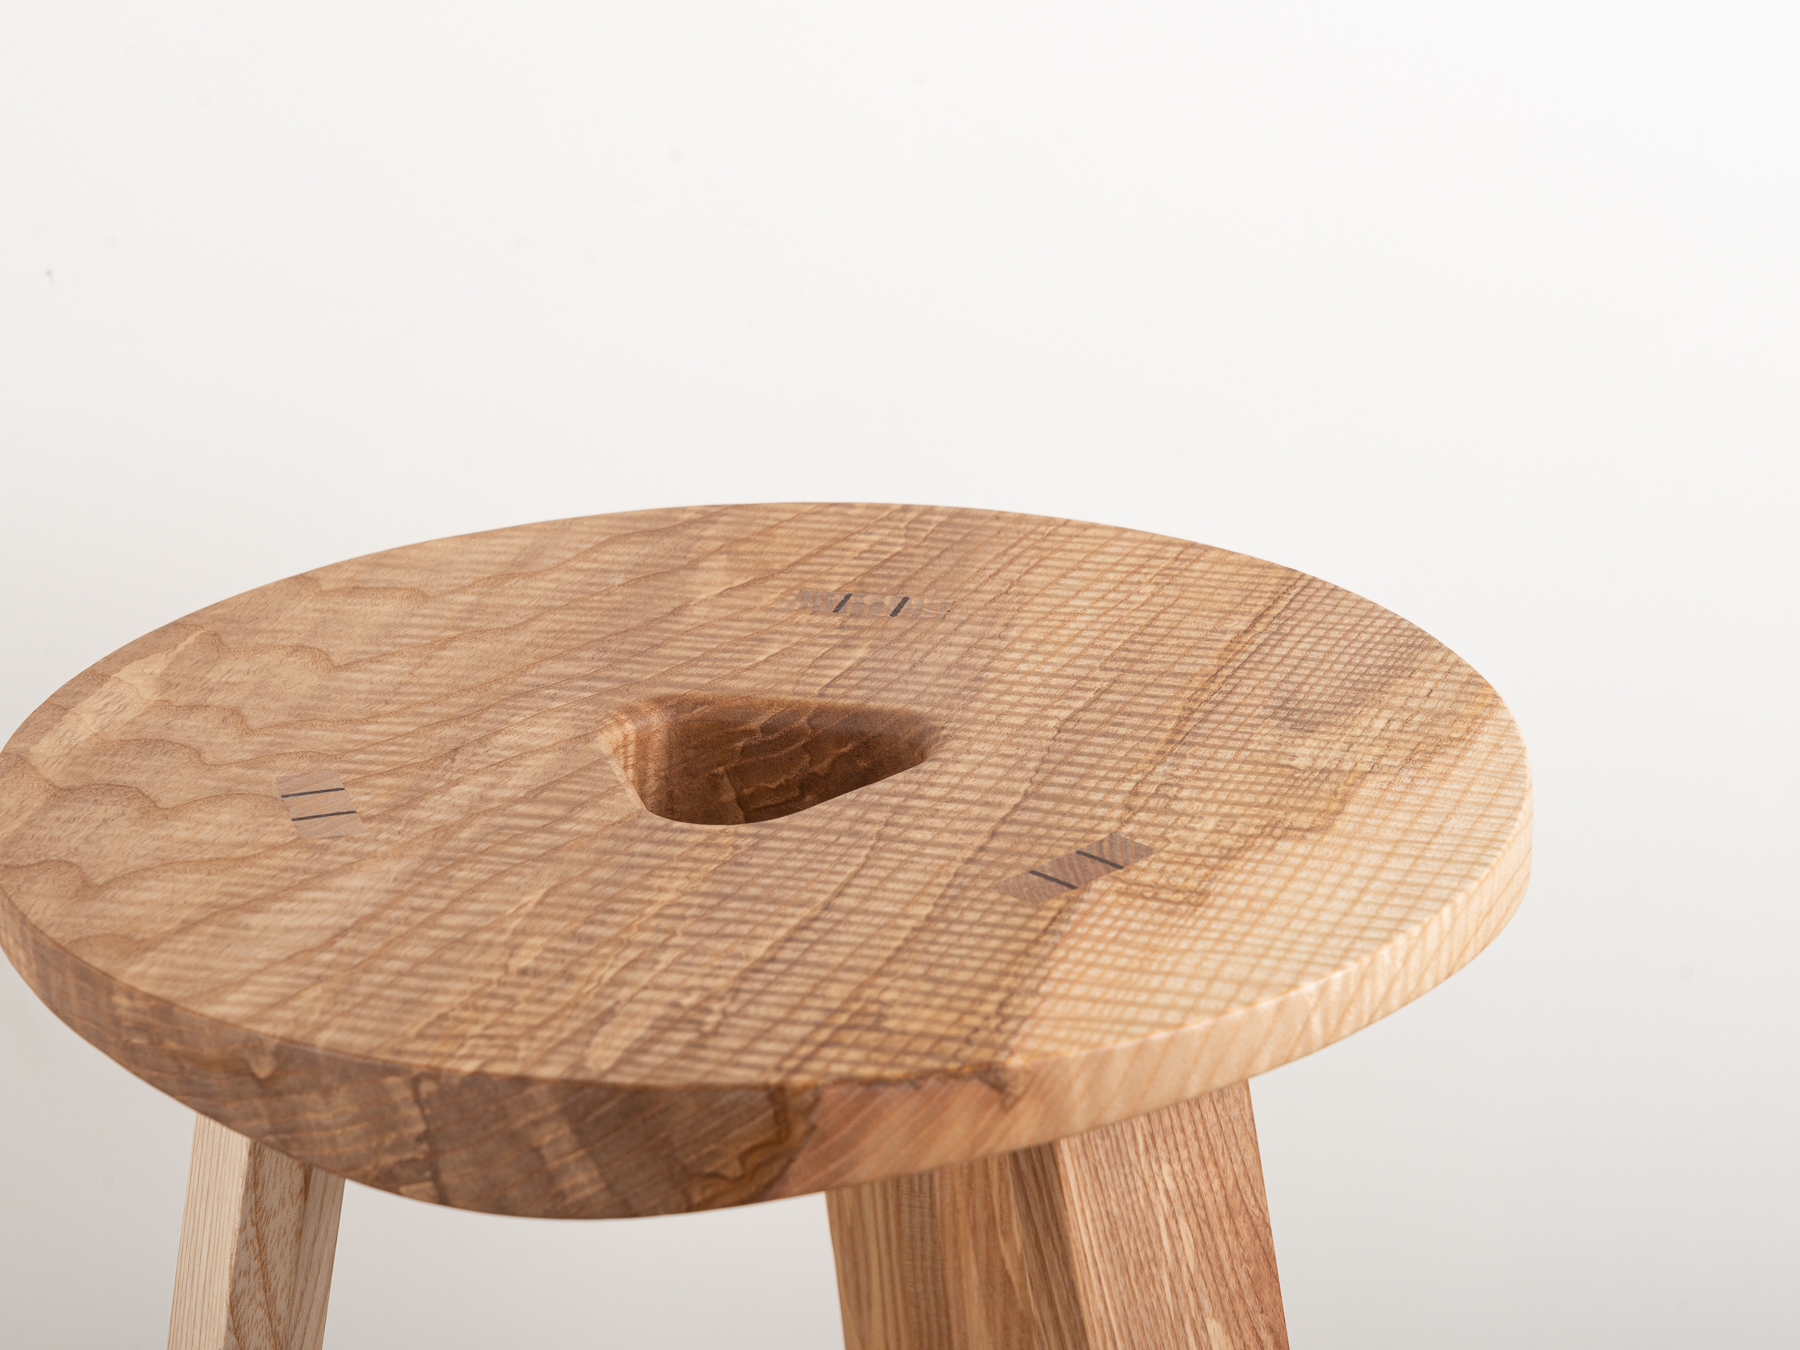 Jan Hendzel Studio Bowater new collection english baked ash sycamore stool shop-3